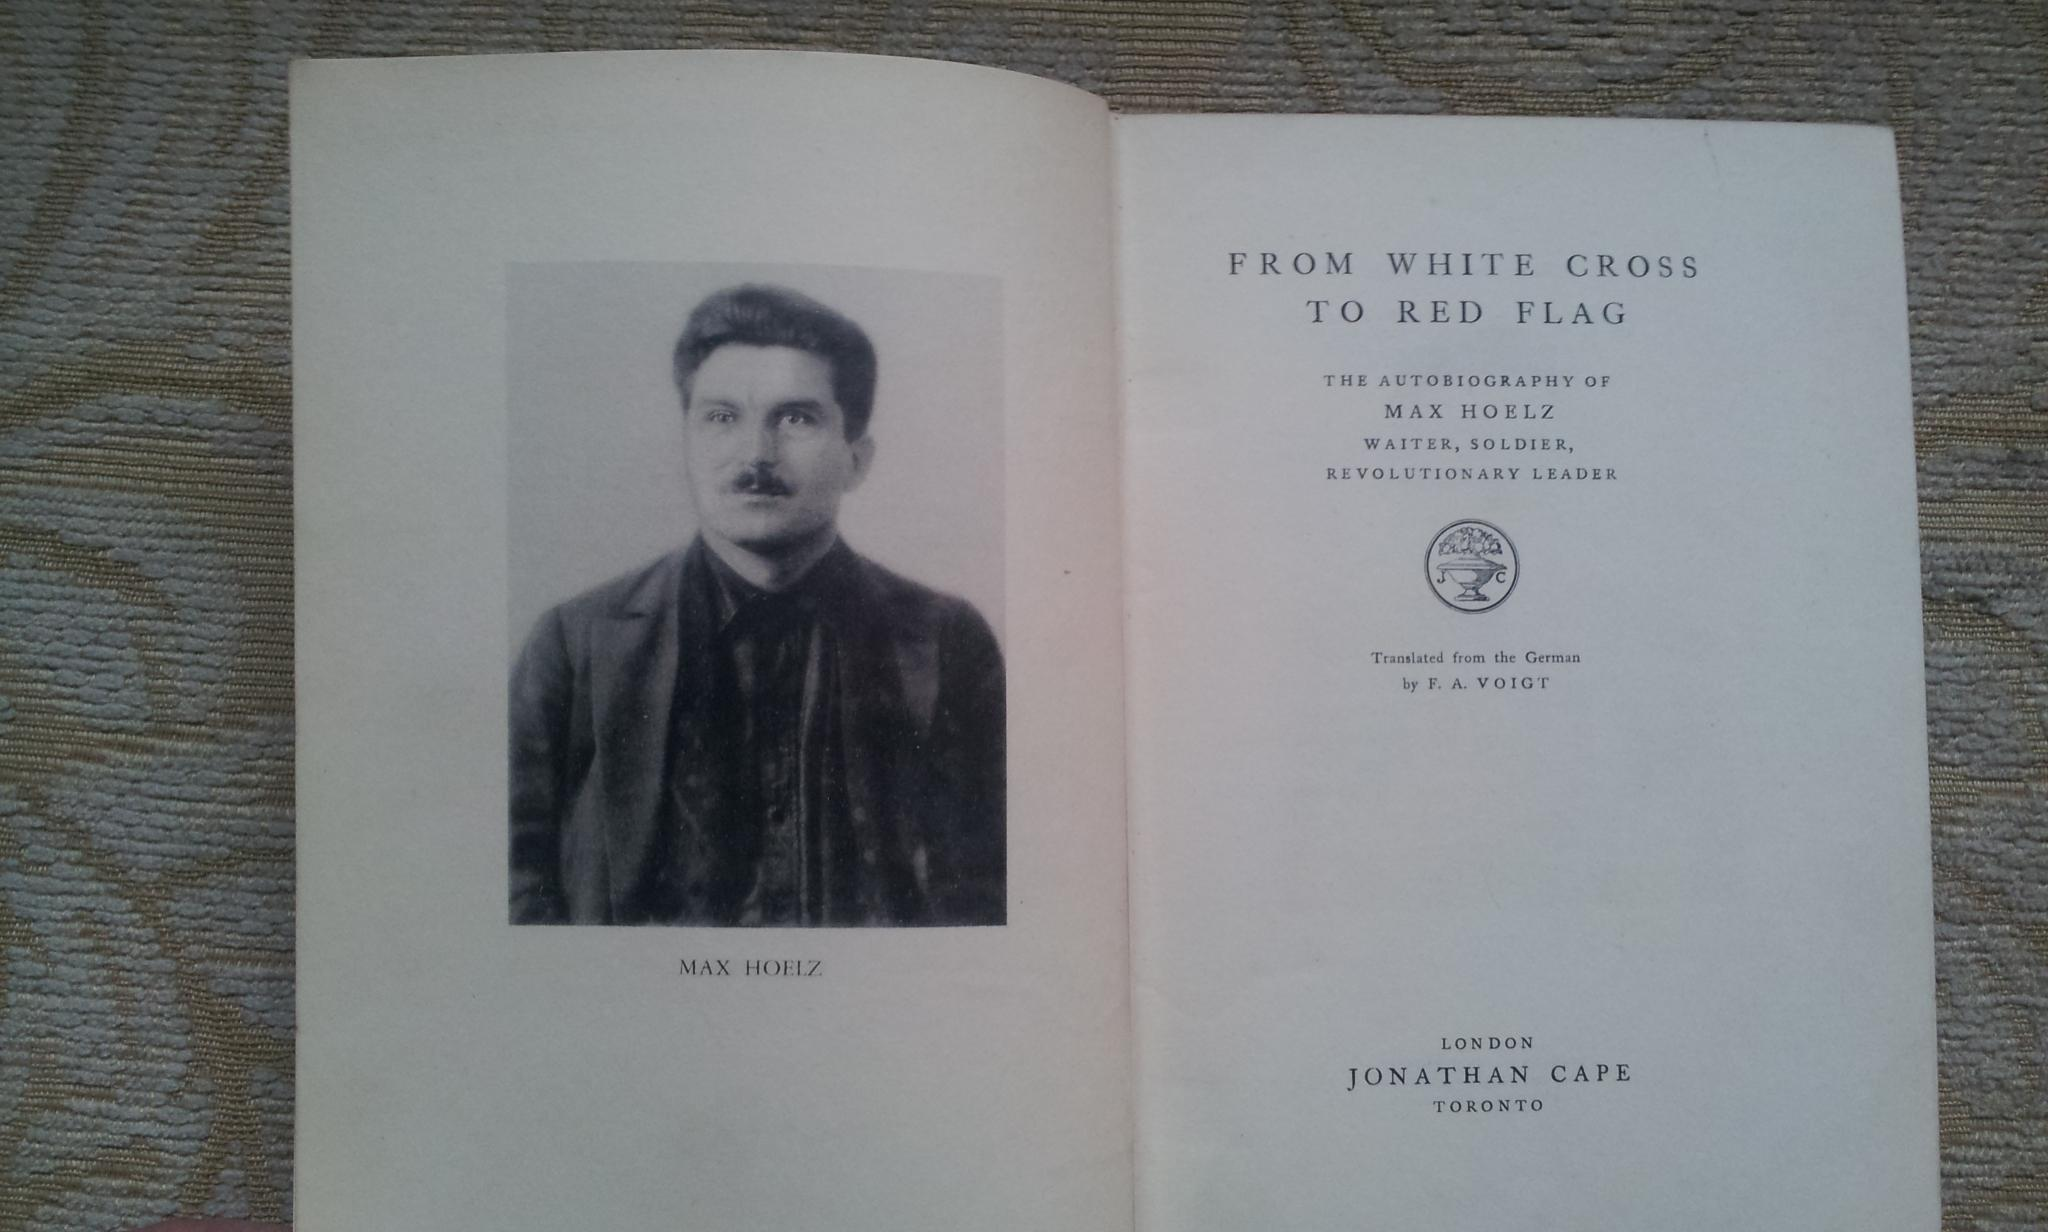 FROM WHITE CROSS TO RED FLAG - The Autobiography of Max Hoelz - Waiter, Soldier, Revolutionary ...